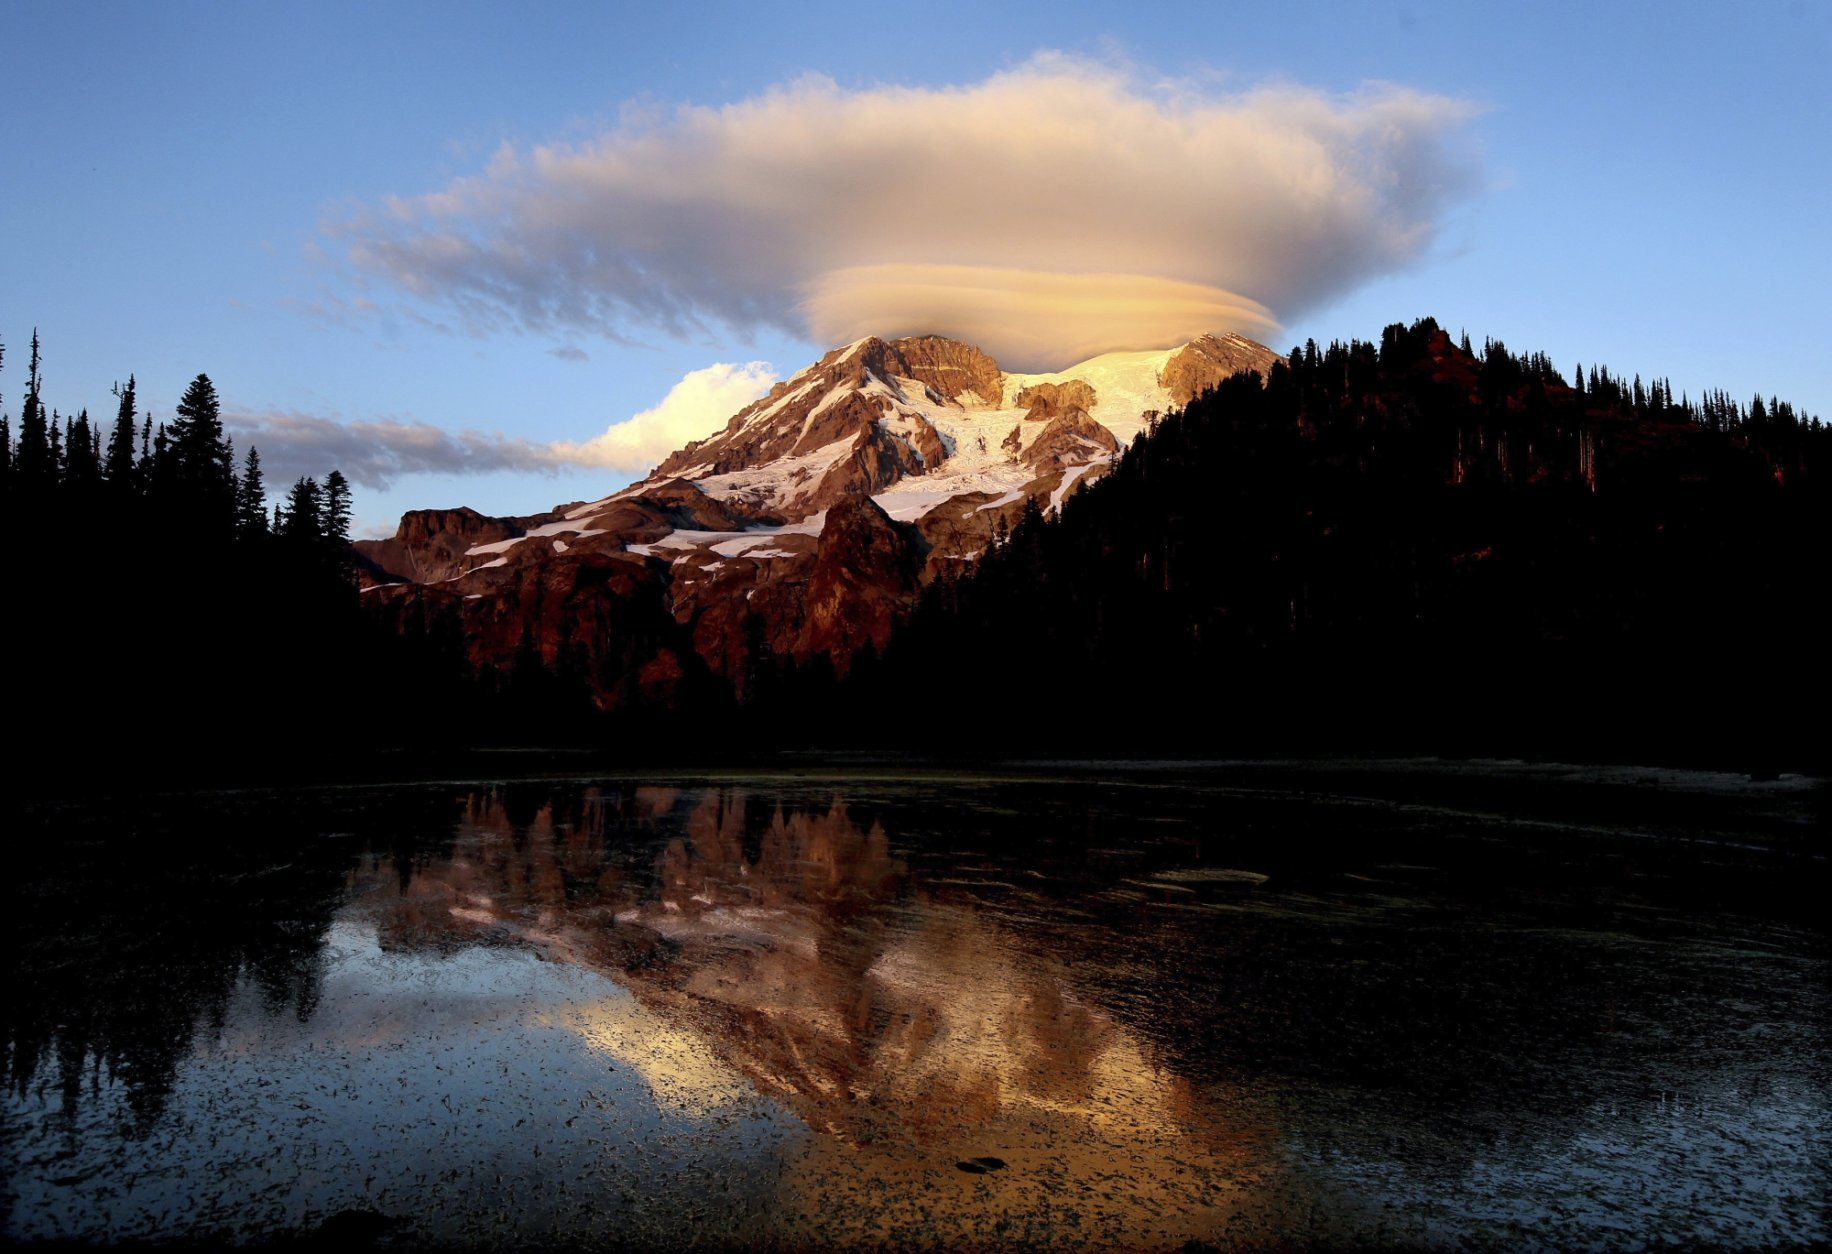 FILE - In this September 2012 file photo, a cloud hovers over Mount Rainier at sunset in a view from Klapatche Park Camp at Mount Rainier National Park, Wash. Access to Mount Rainer National Park and other national parks will be limited due to the government shutdown. (Drew Perine/The News Tribune via AP, File)